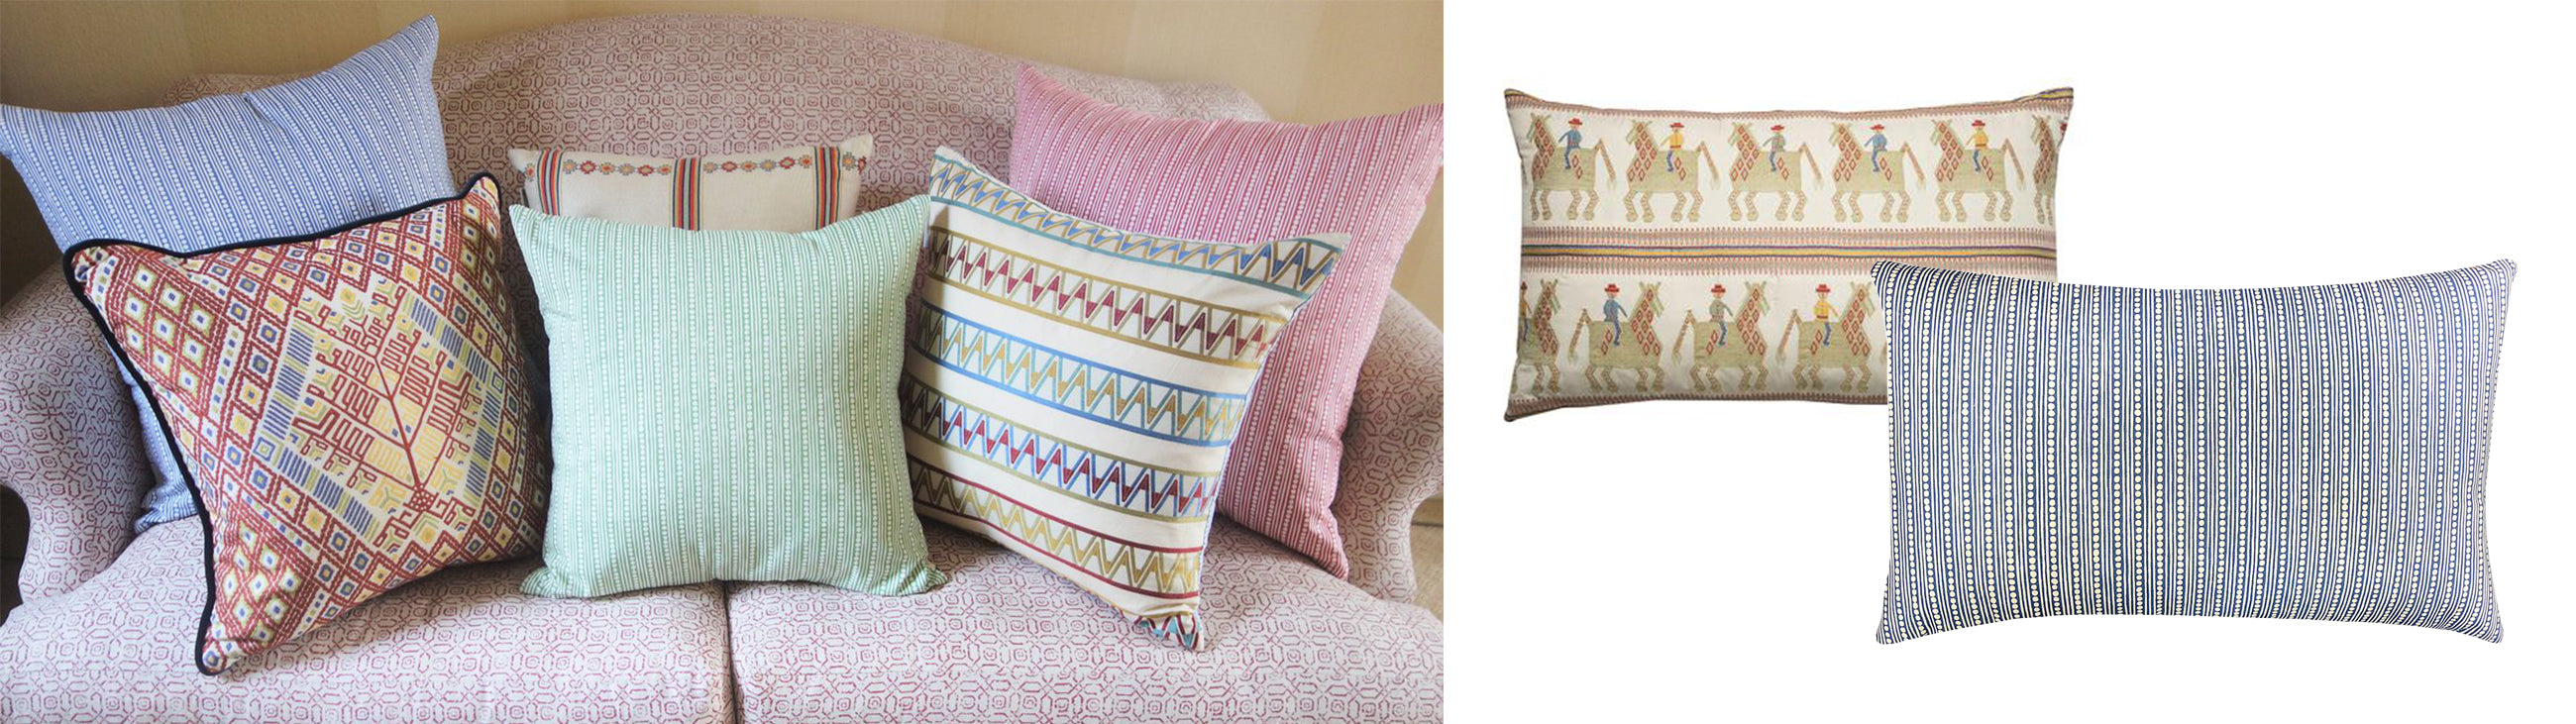 Wicklewood's reversible cushions now backed in Blithfield's spotted and striped Wicklewood fabric